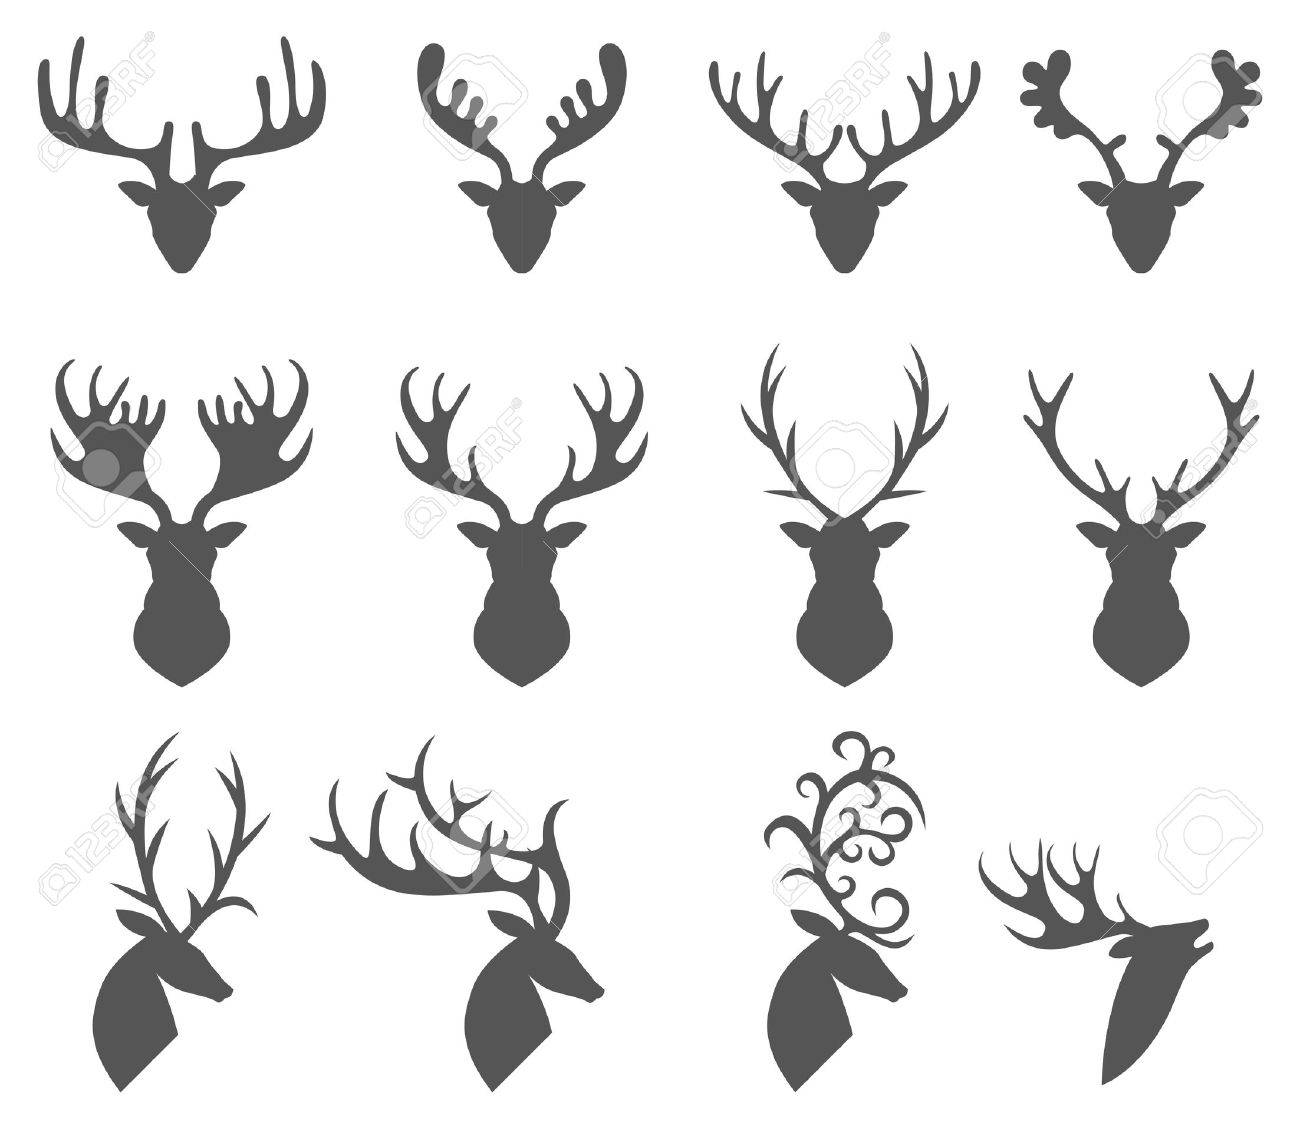 Vector illustration of collection of deers silhouette - 46474345